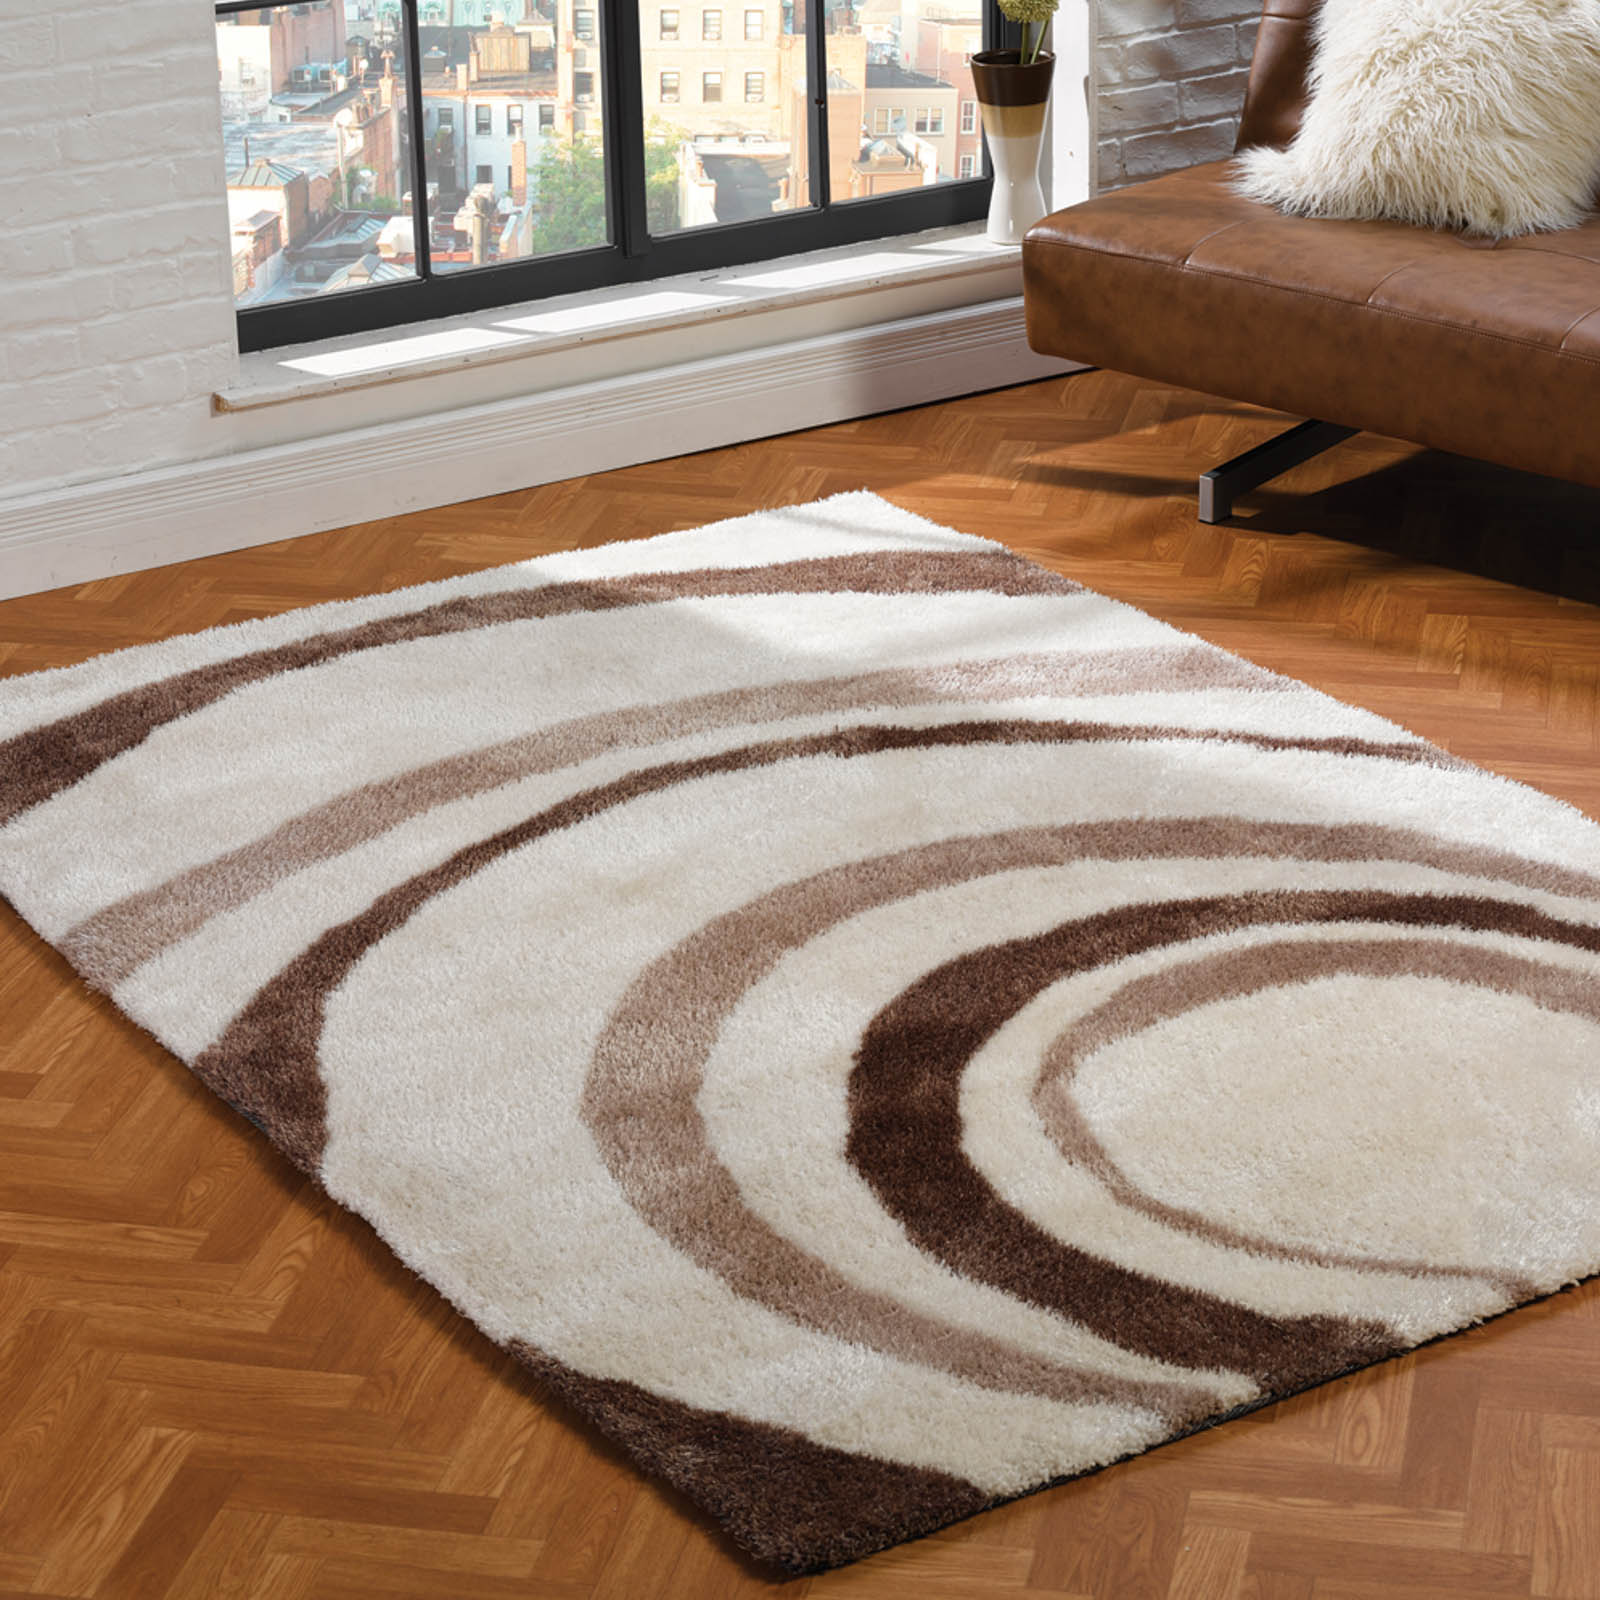 Grande Vista Droplet Rugs in Cream and Beige